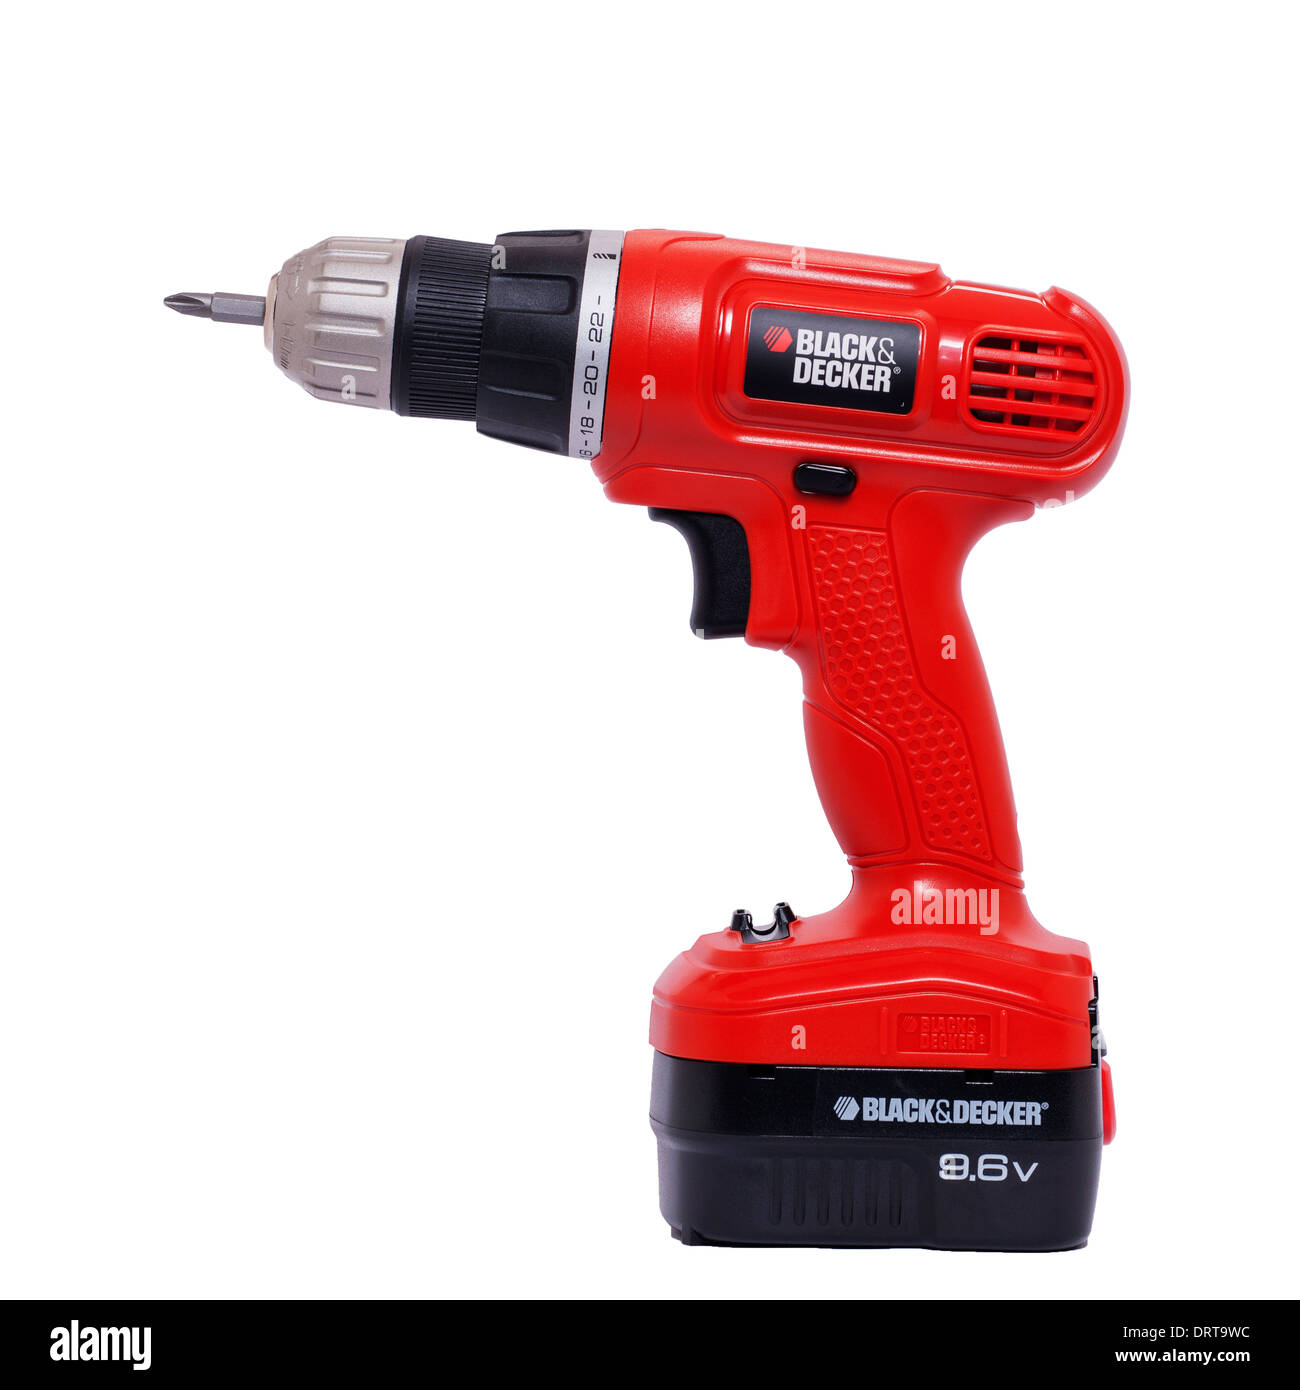 A Black & Decker cordless drill / screwdriver on a white background - Stock Image